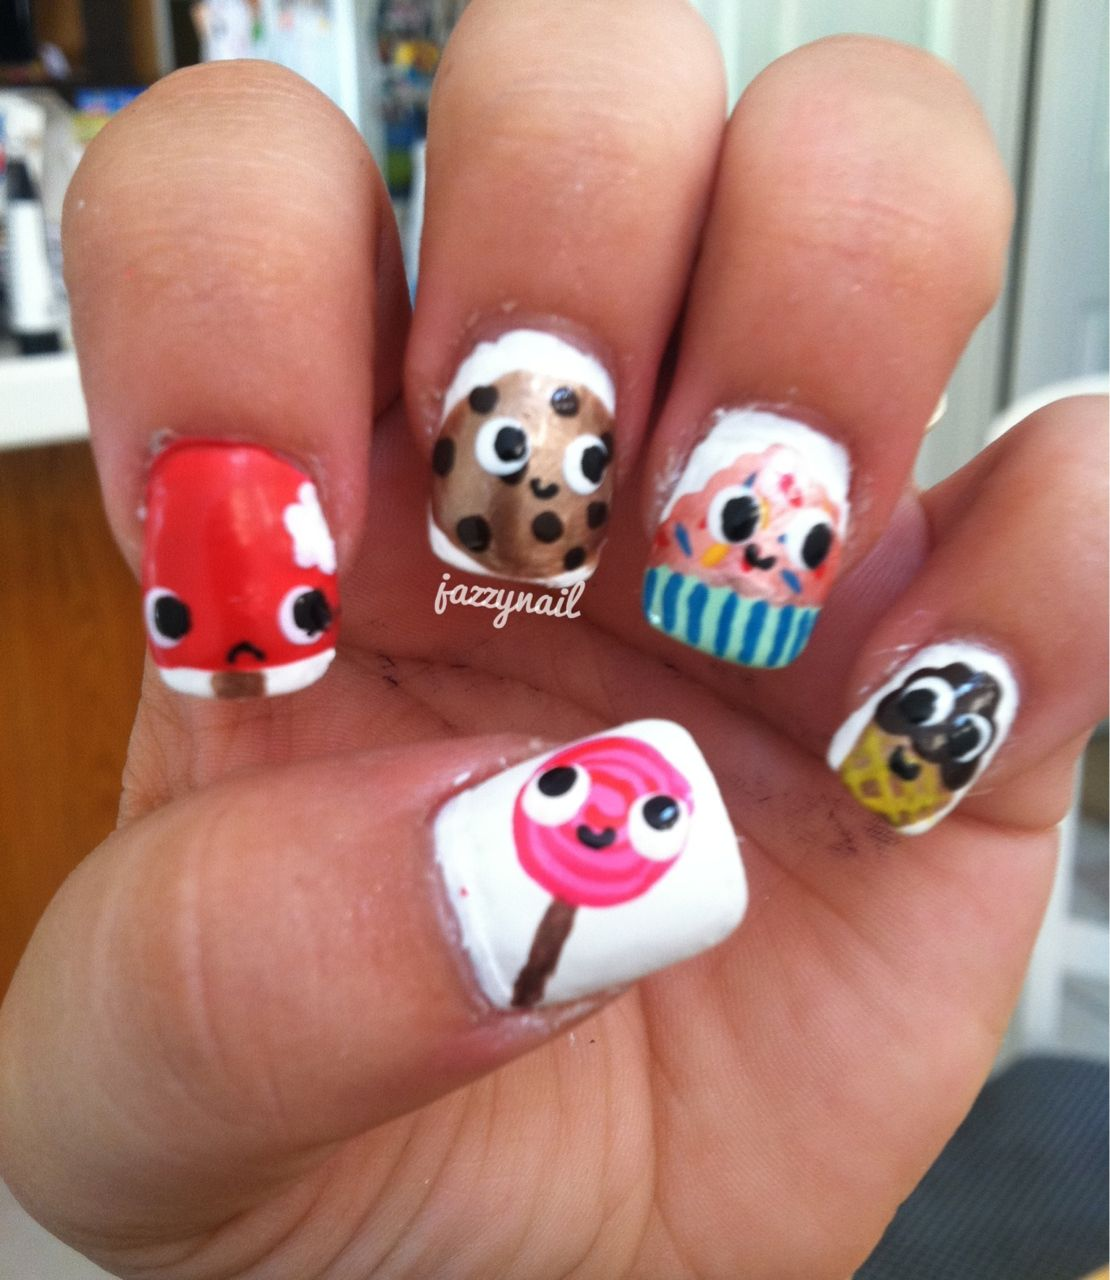 Cute Nail Art Ideas: Funny Nail Art Design Ideas With Cute 5 Desserts Cartoon